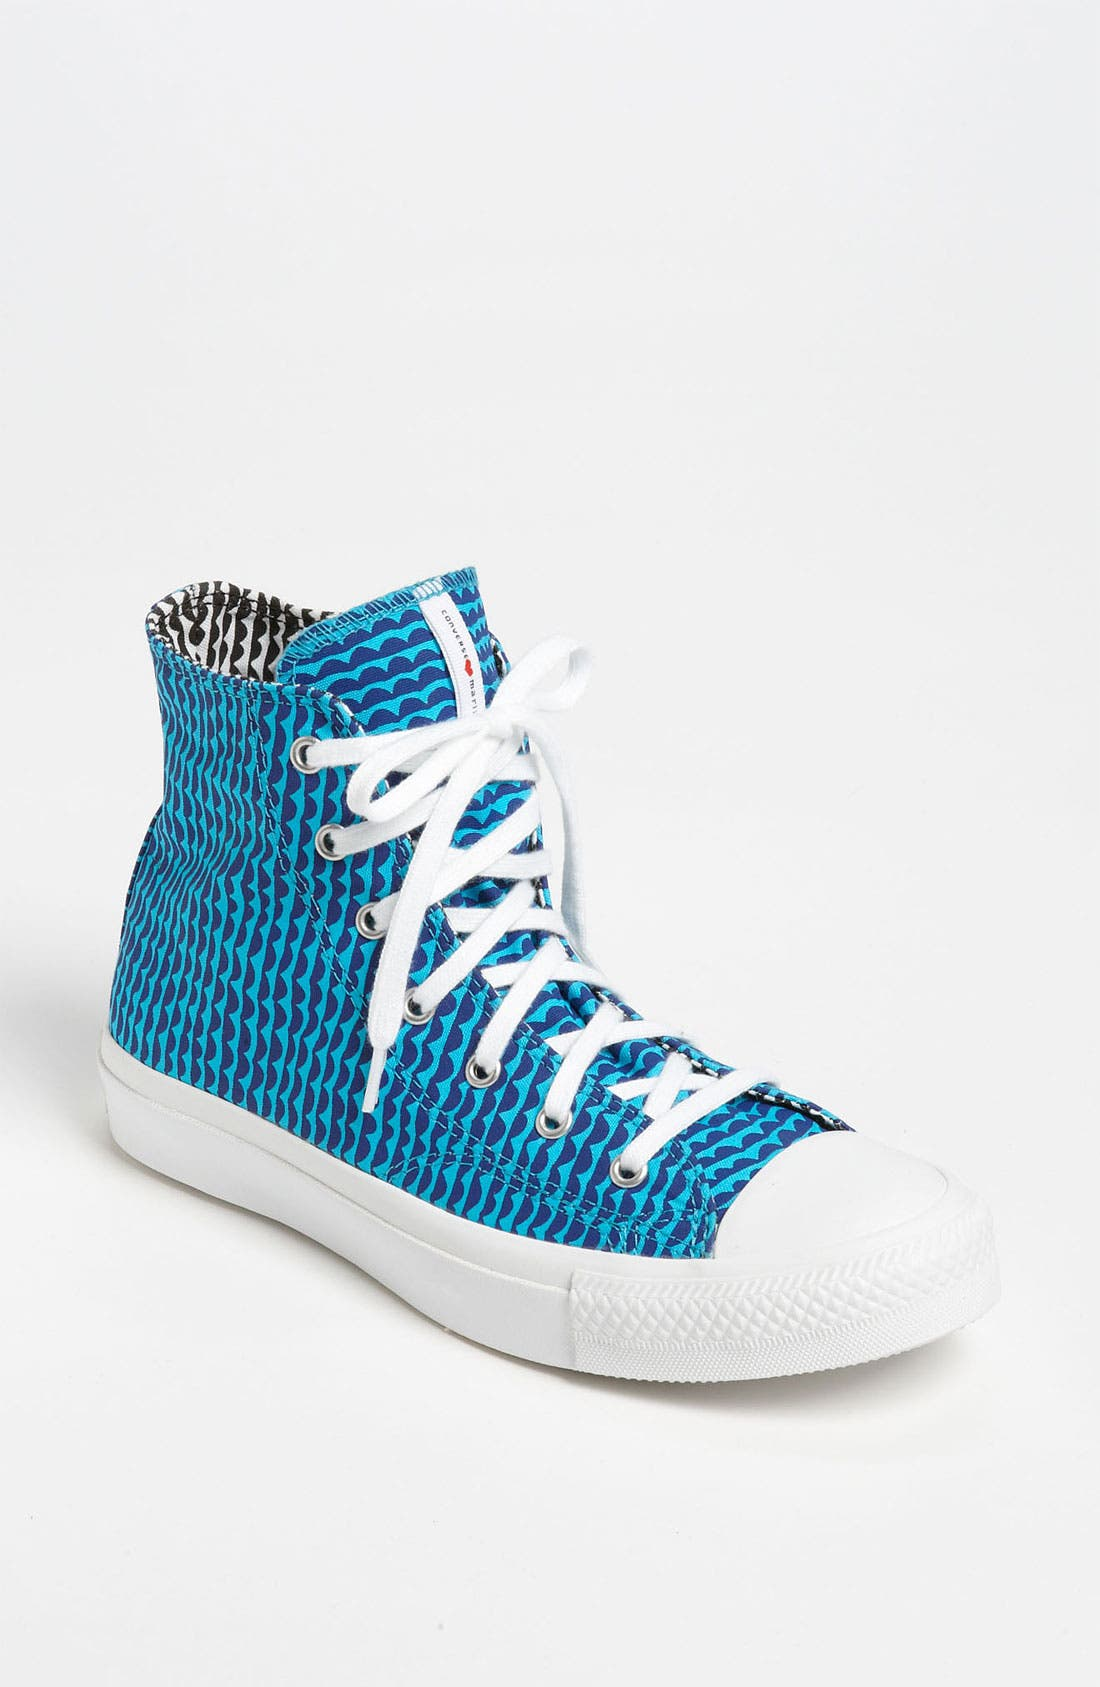 Main Image - Converse Chuck Taylor® All Star® 'Marimekko' High Top Sneaker (Women)